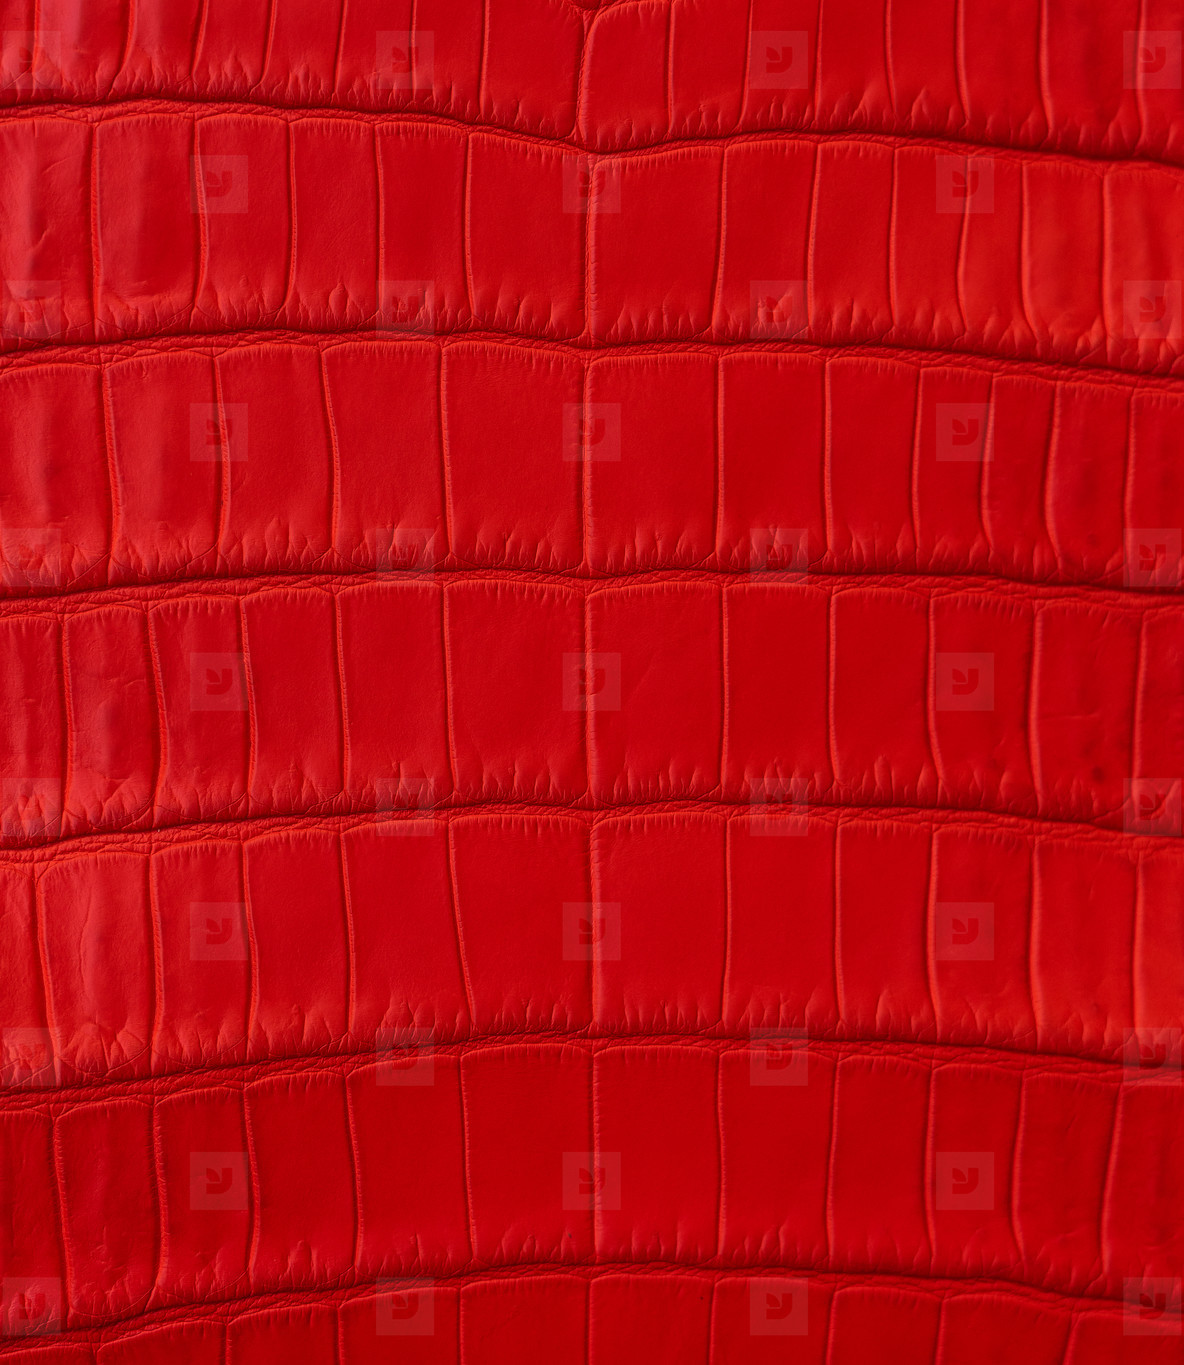 background from red crocodile texture